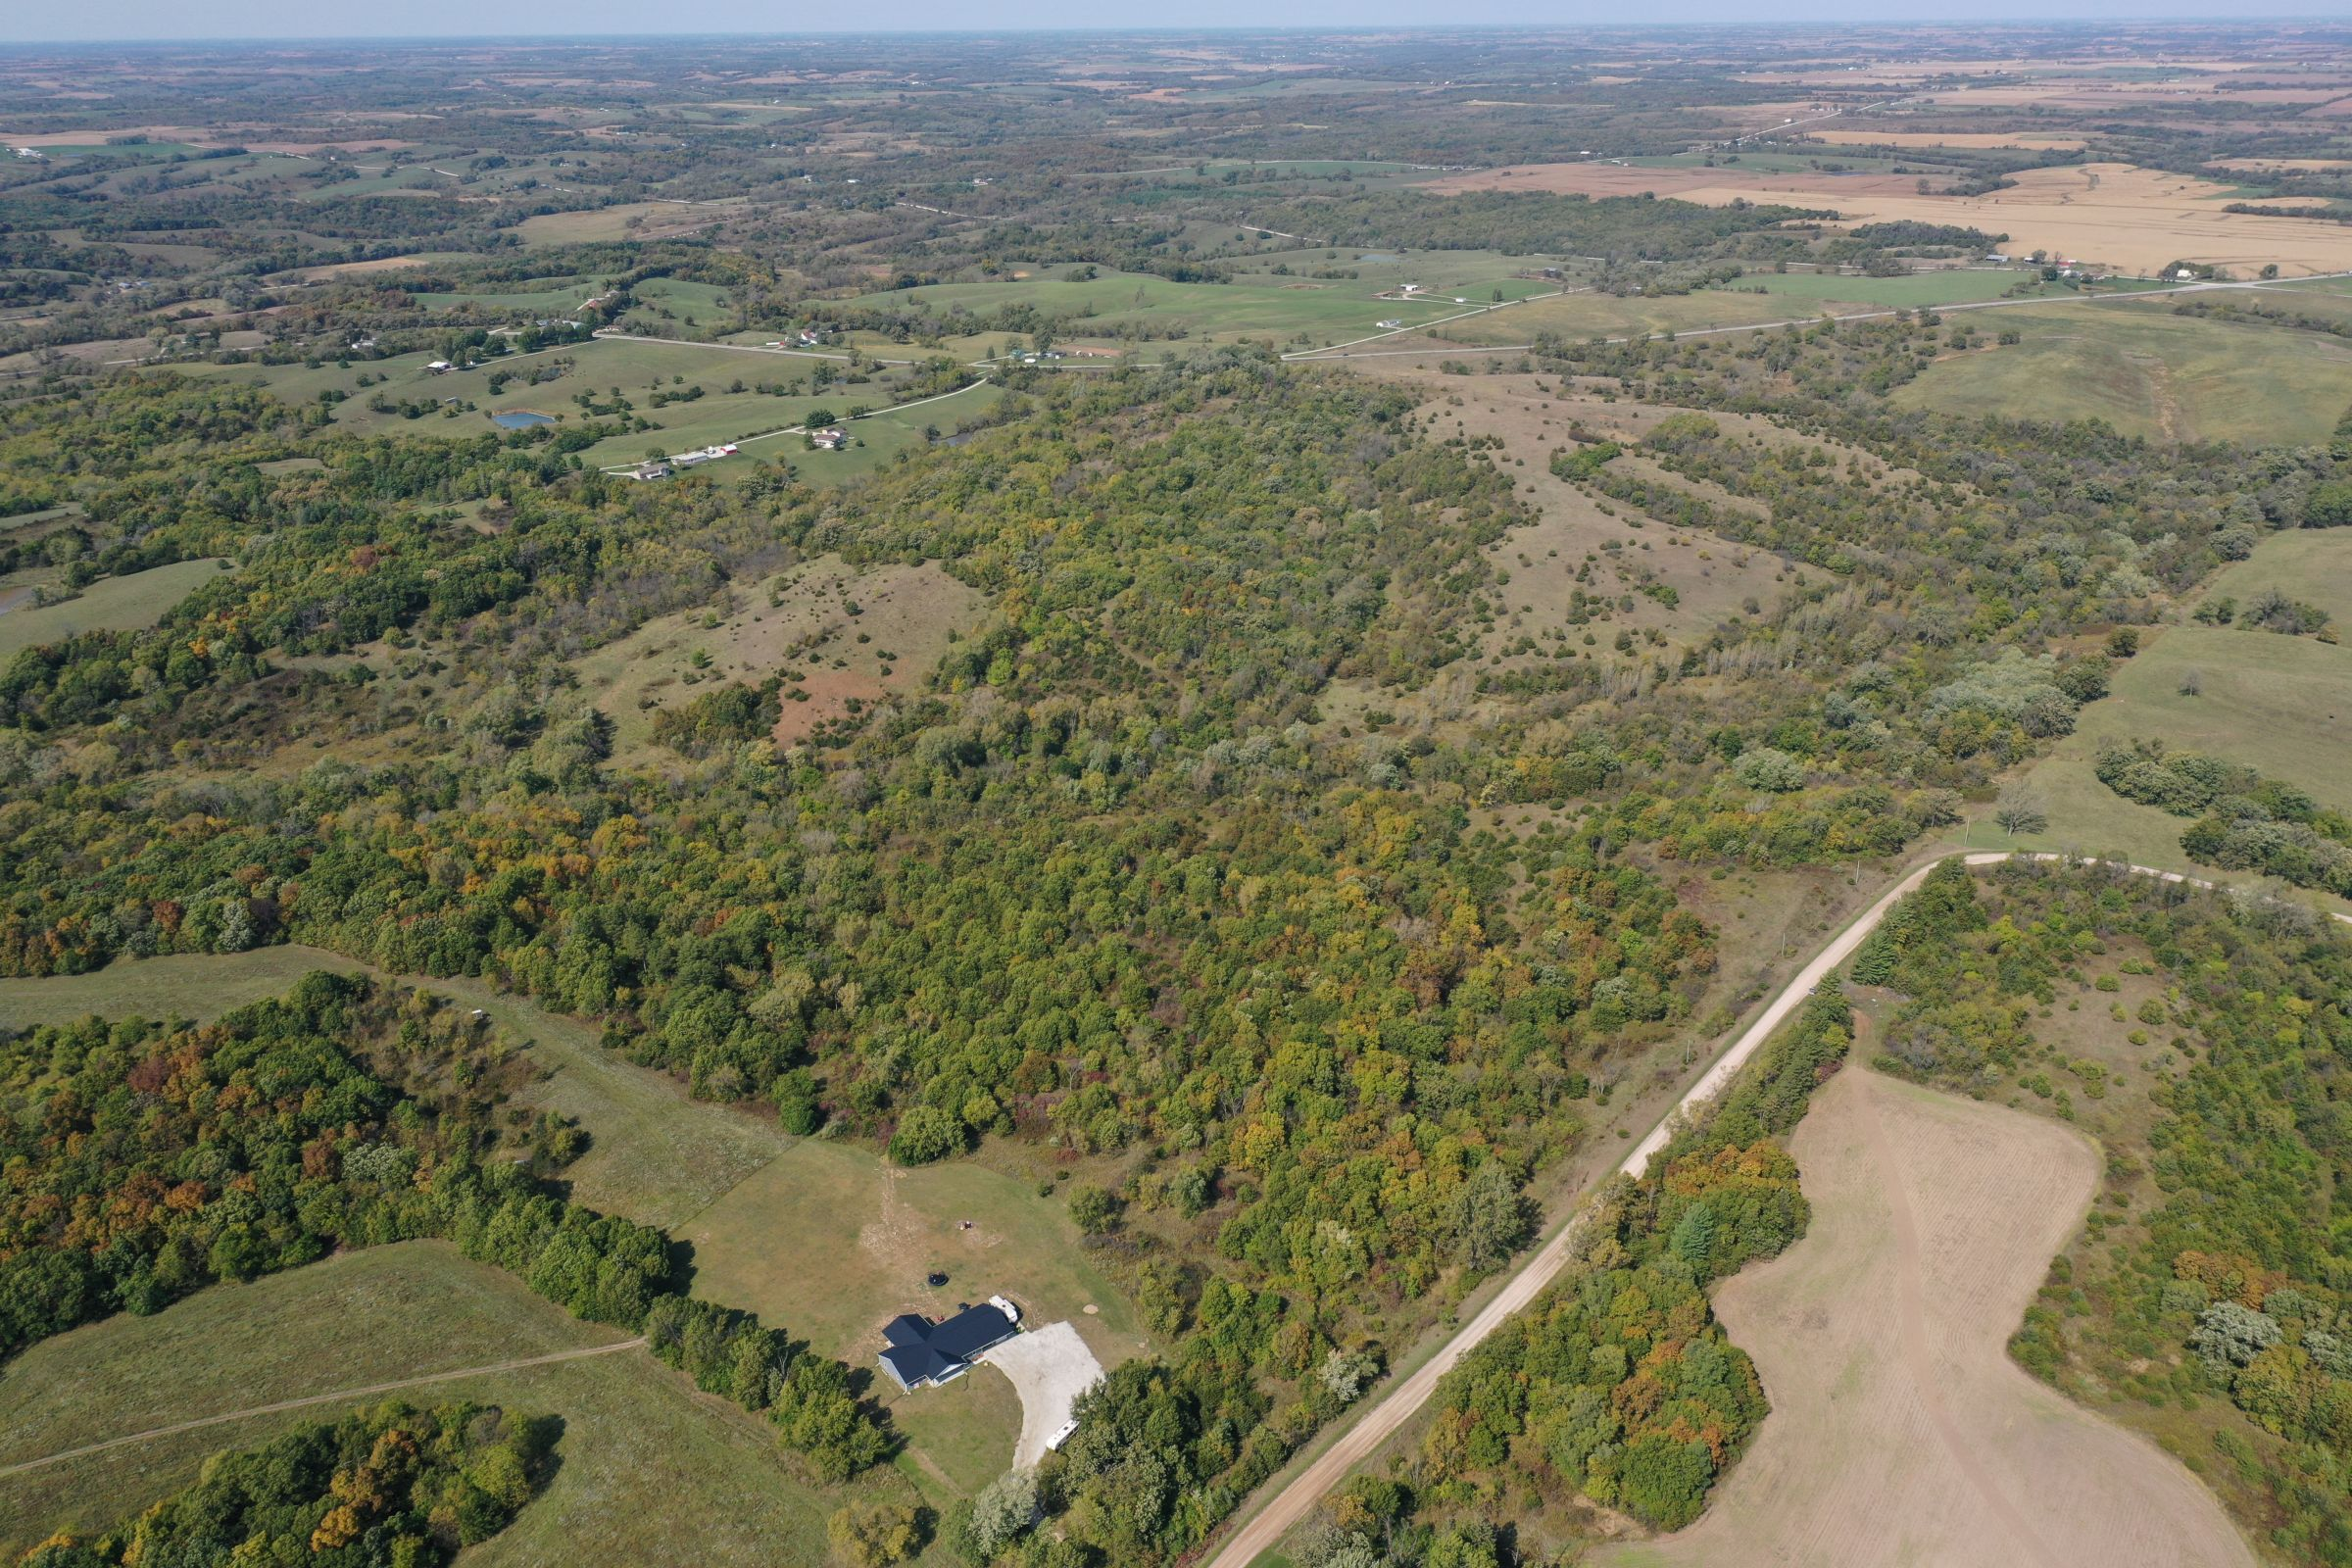 land-lucas-county-iowa-215-acres-listing-number-15206-2-2020-10-09-171004.jpg